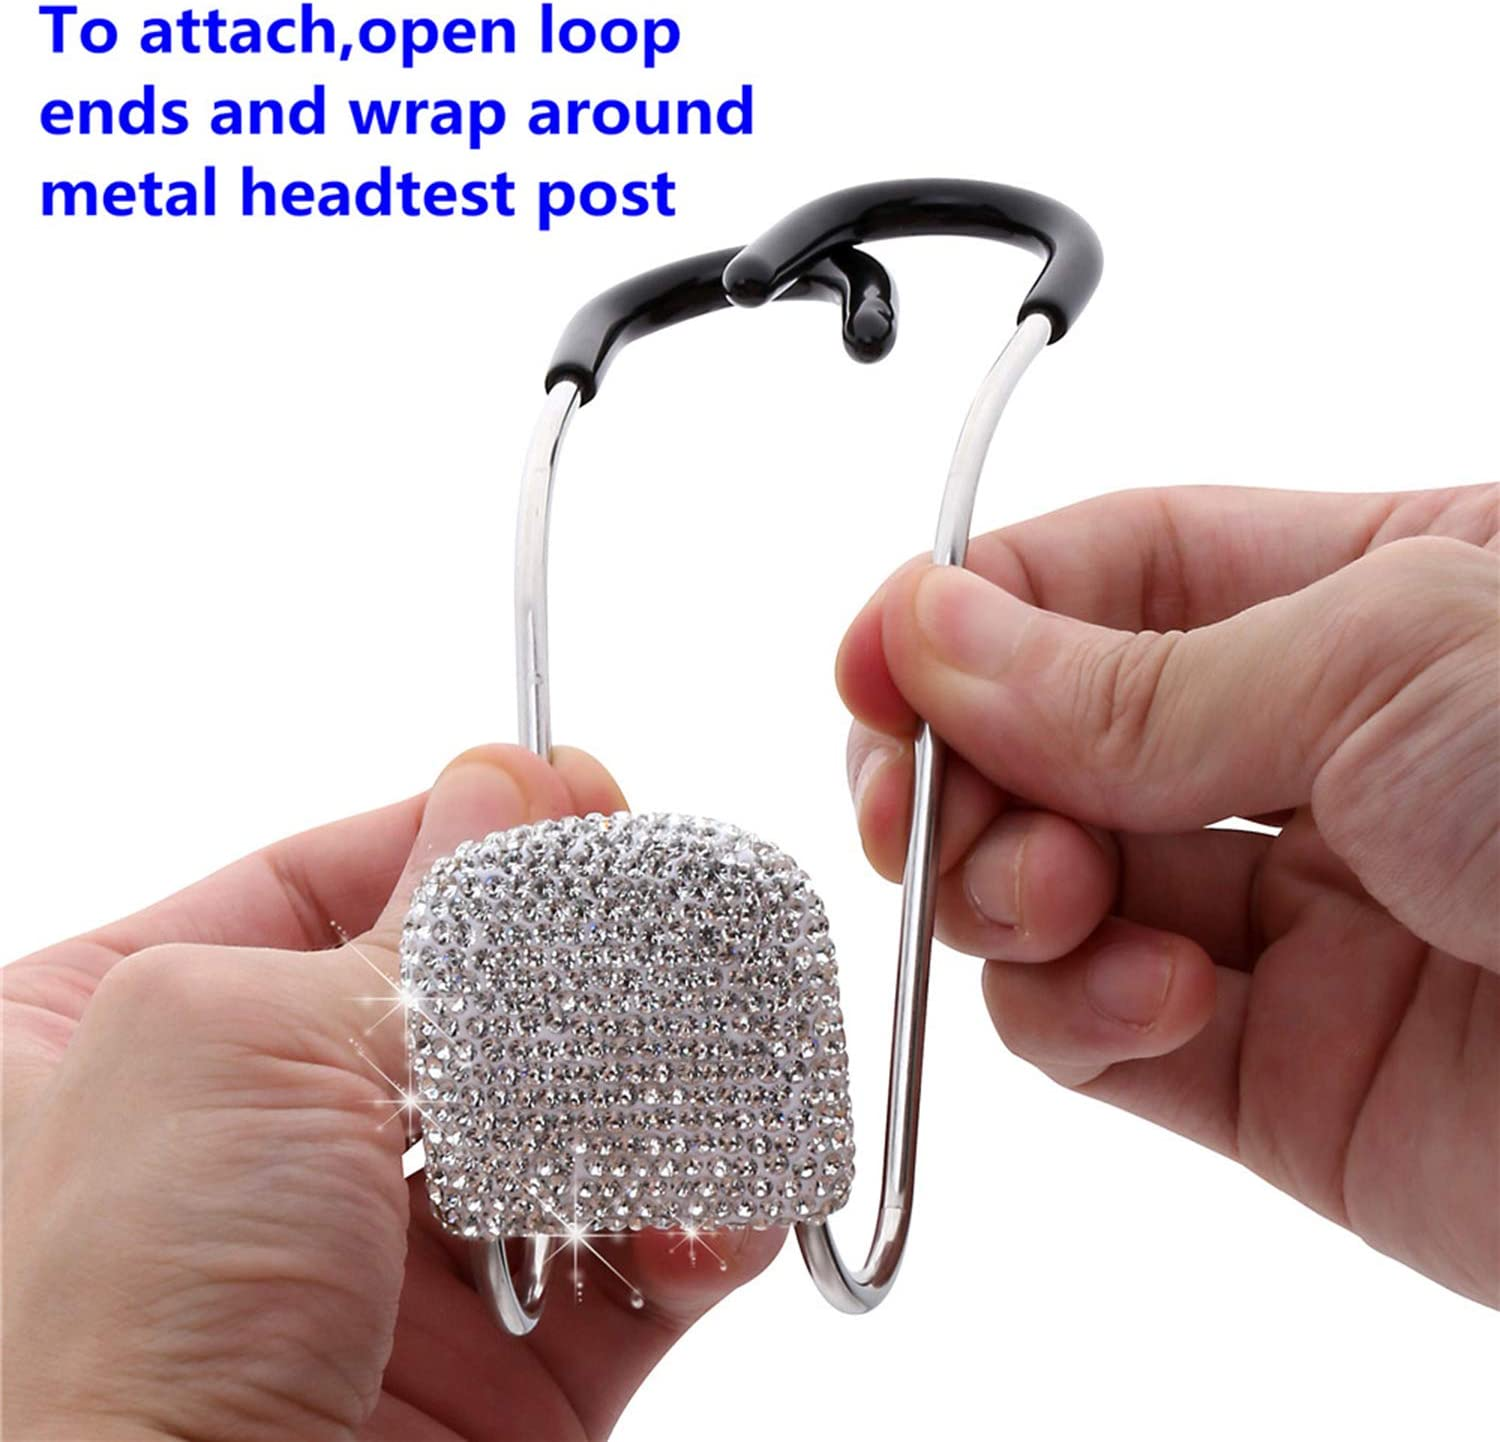 2pcs Auto Hooks Strong and Durable Backseat Hanger Storage Universal for SUV Truck Vehicle. Bling Car Hangers Handmade Rhinestones Crystal Car Hangers Organizer Seat Headrest Hooks Sliver